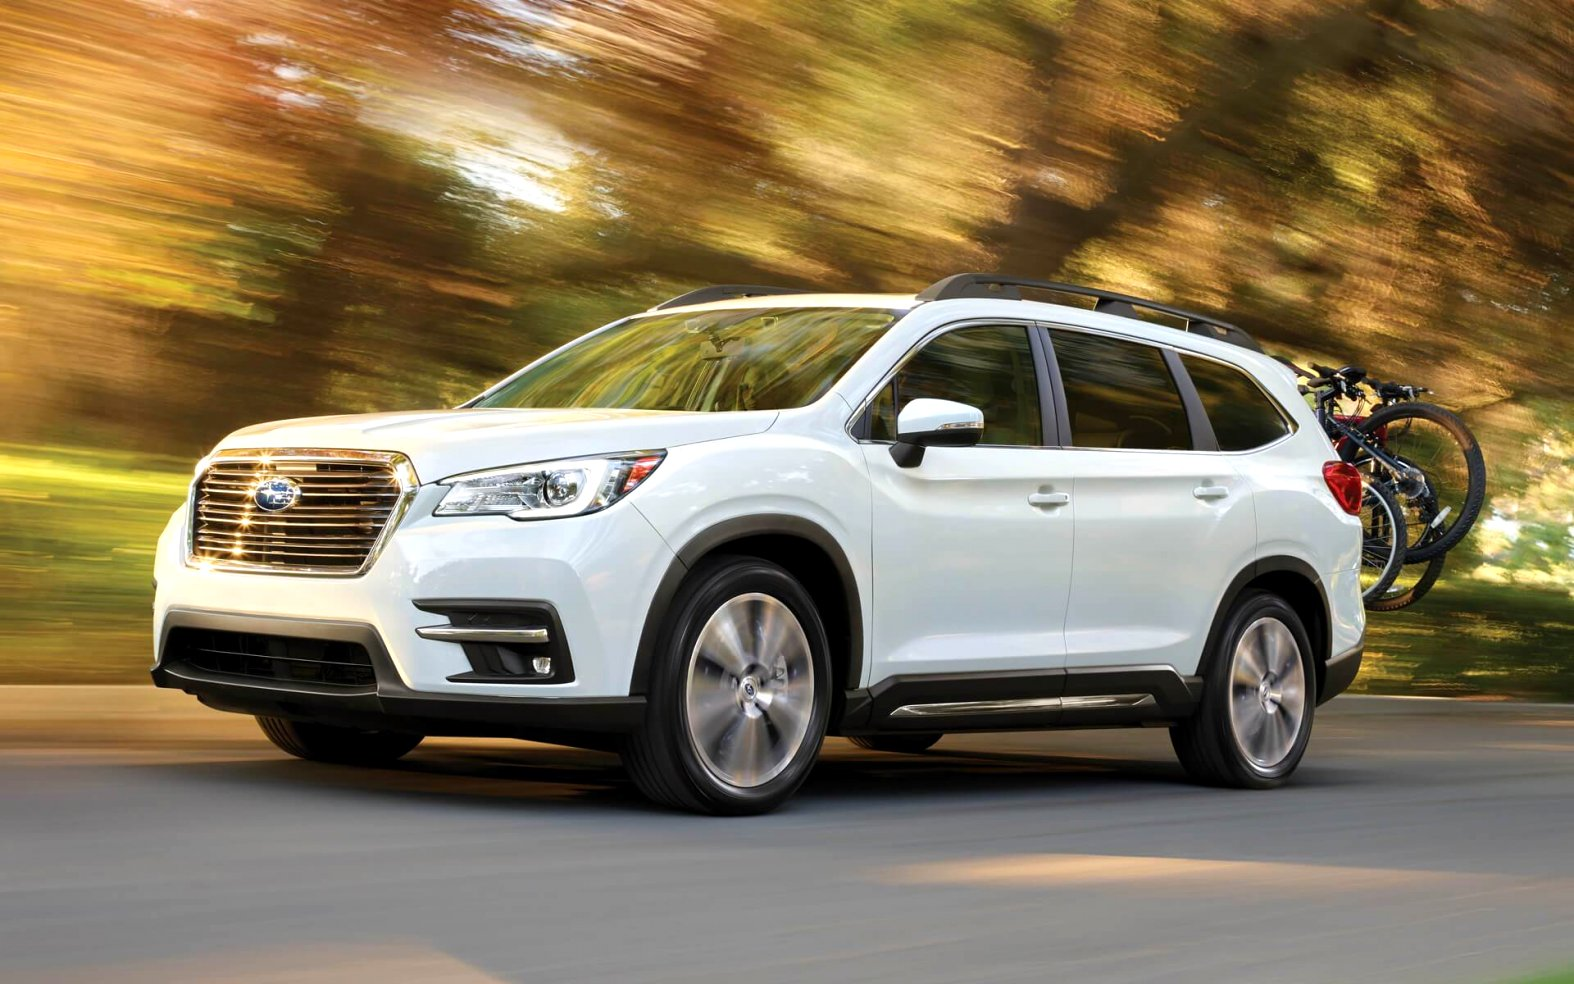 2020 subaru ascent price Engine